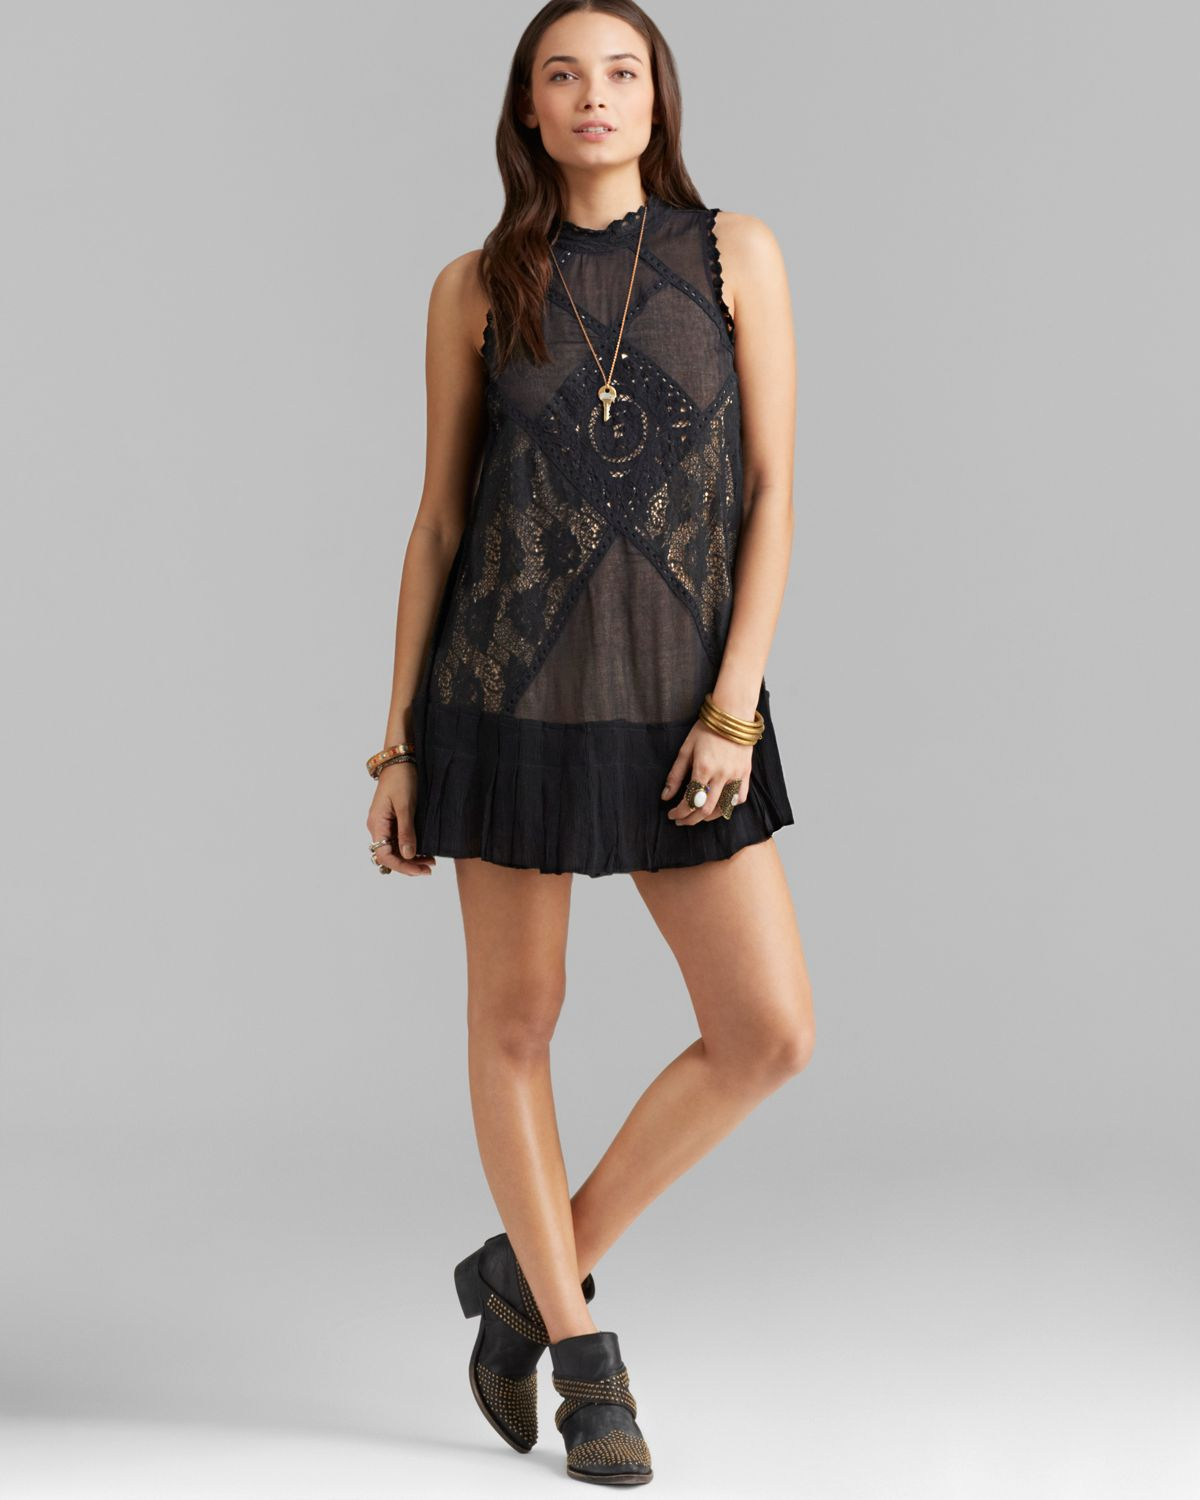 Free People Dress Angel Lace in Black - Lyst 5bc62efa9d5d